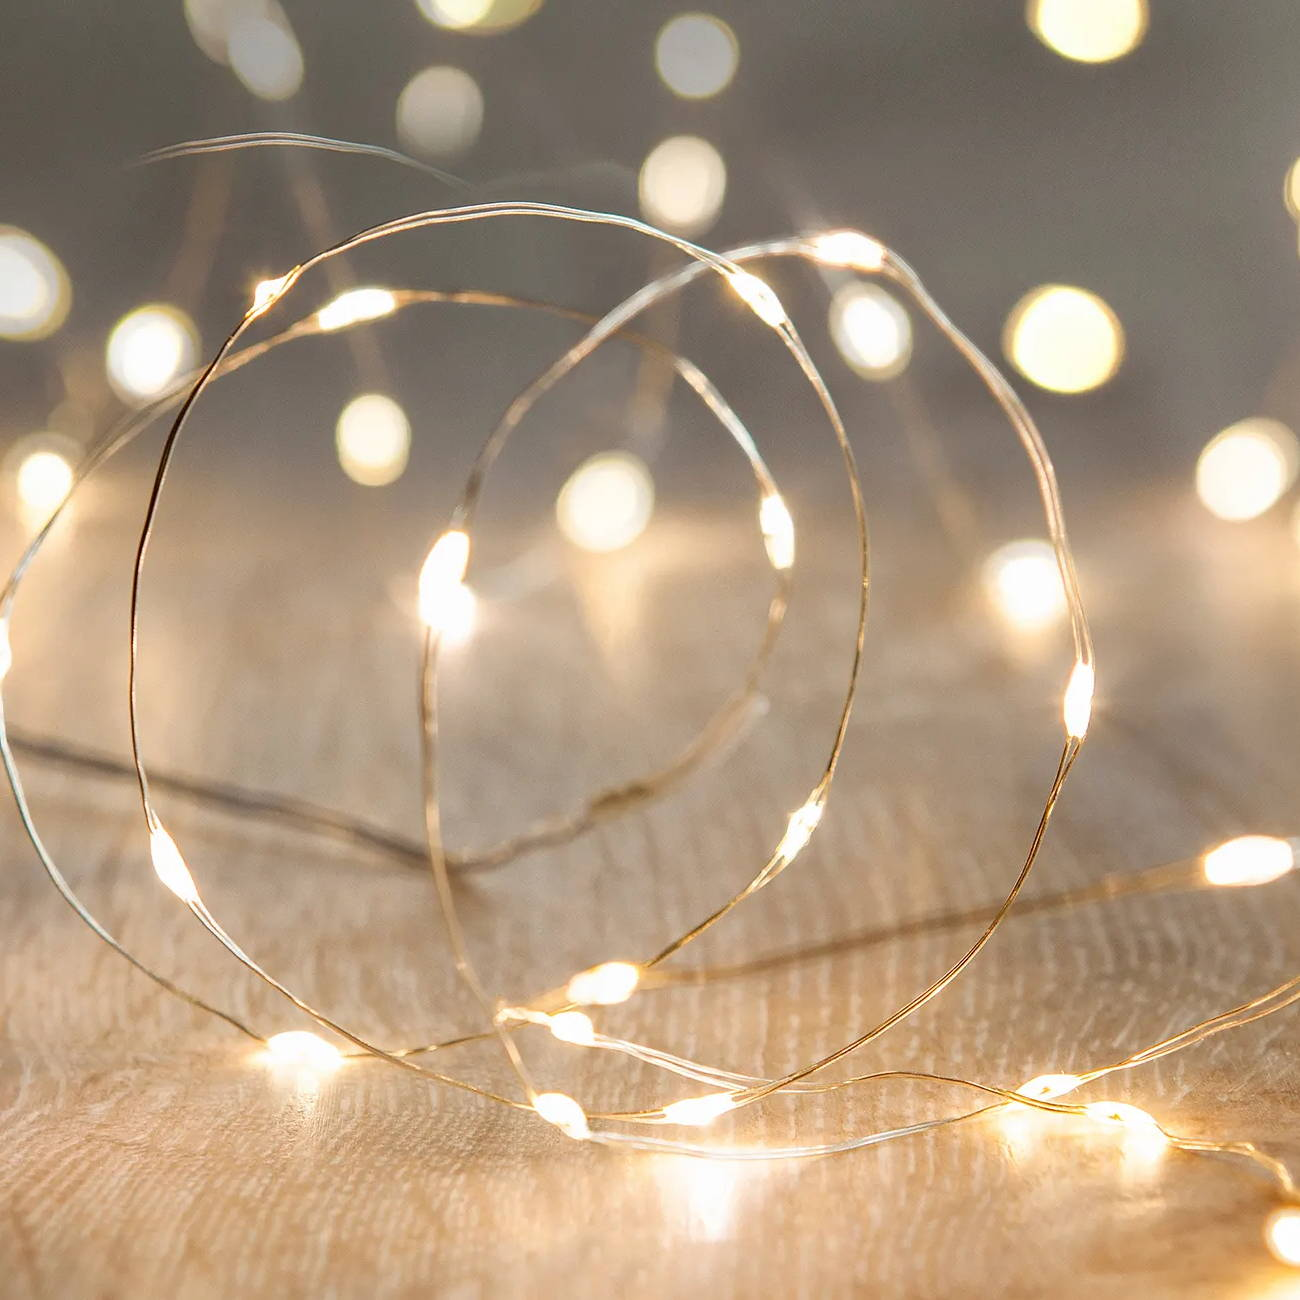 A string of 20 warm white LED micro fairy lights, battery powered and suitable for indoor and outdoor use